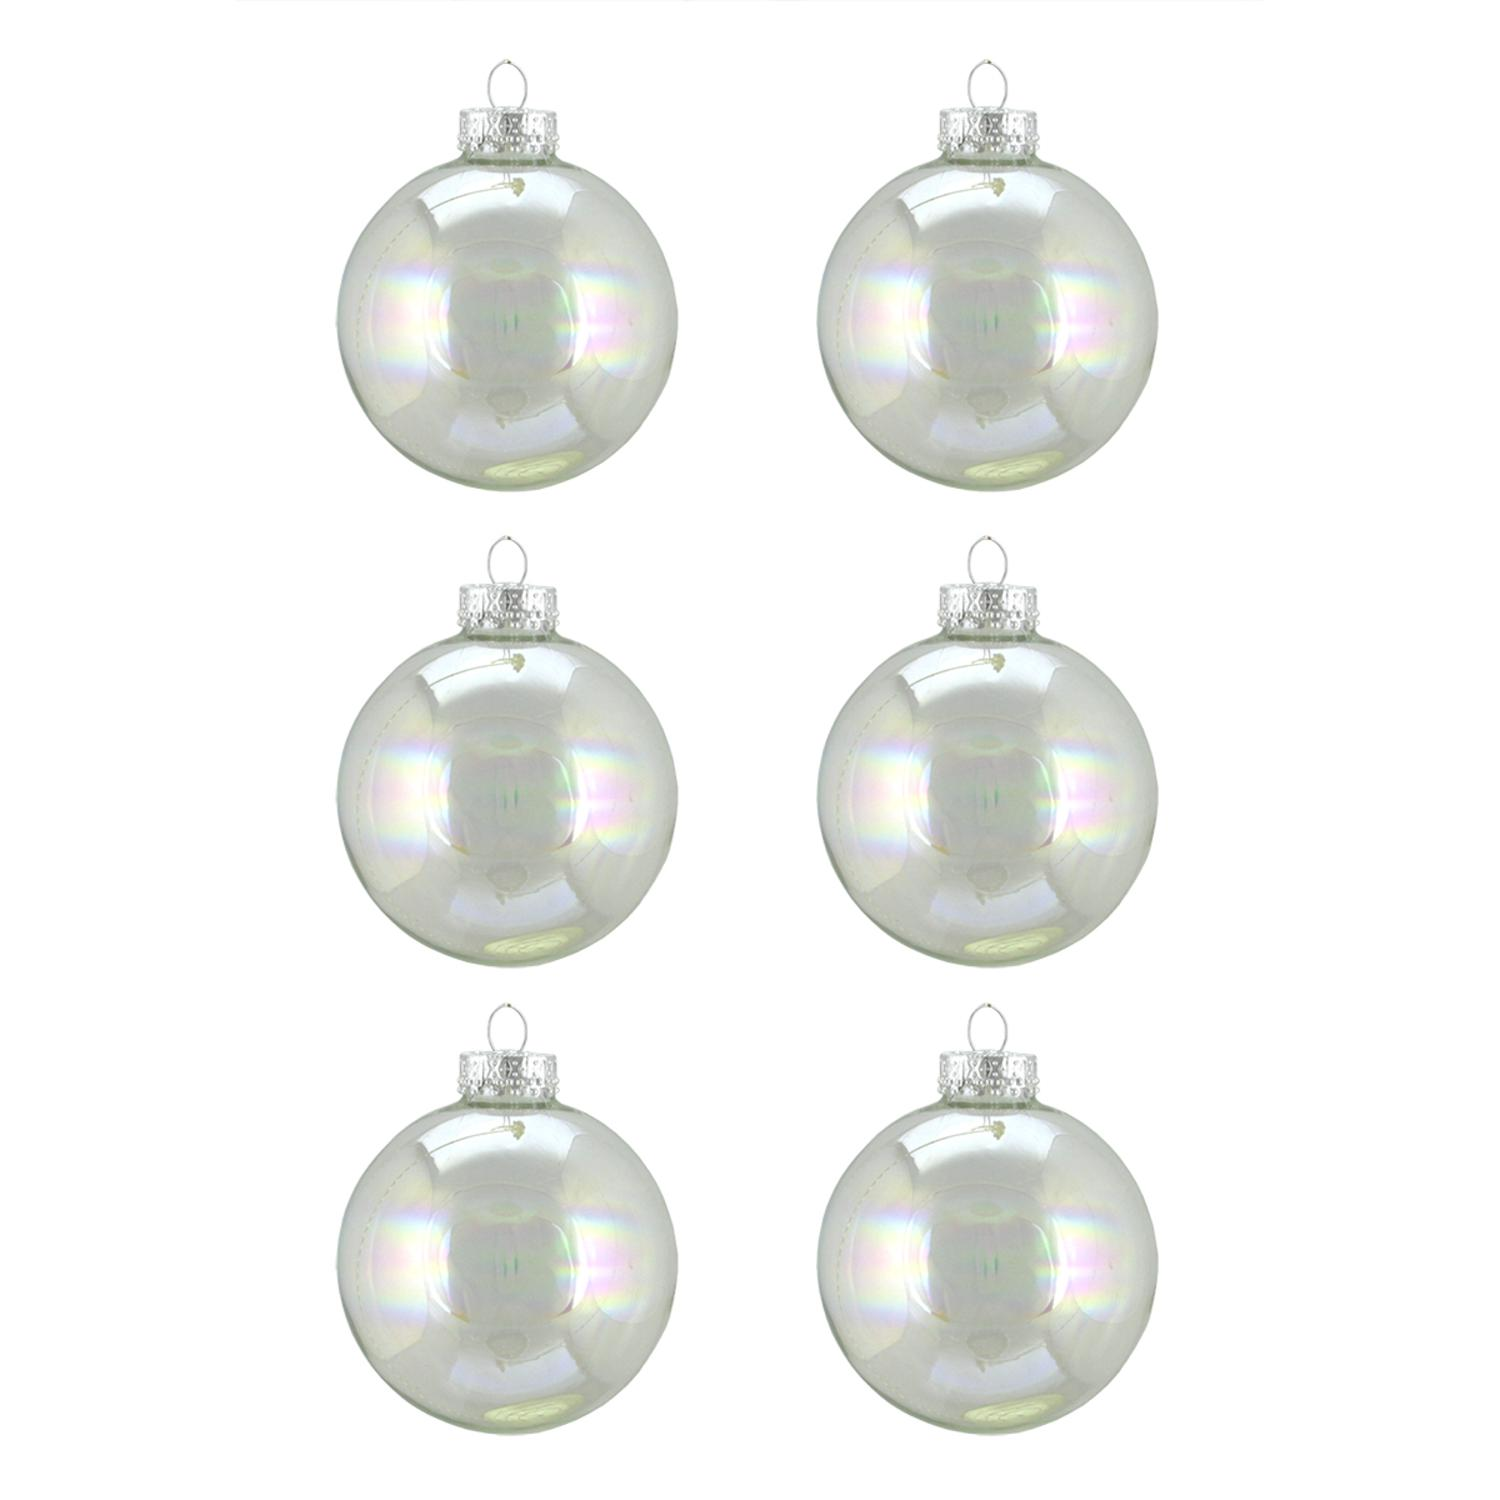 "Northlight 6ct Iridescent Glass Ball Christmas Ornament Set 2.5"" - Clear"